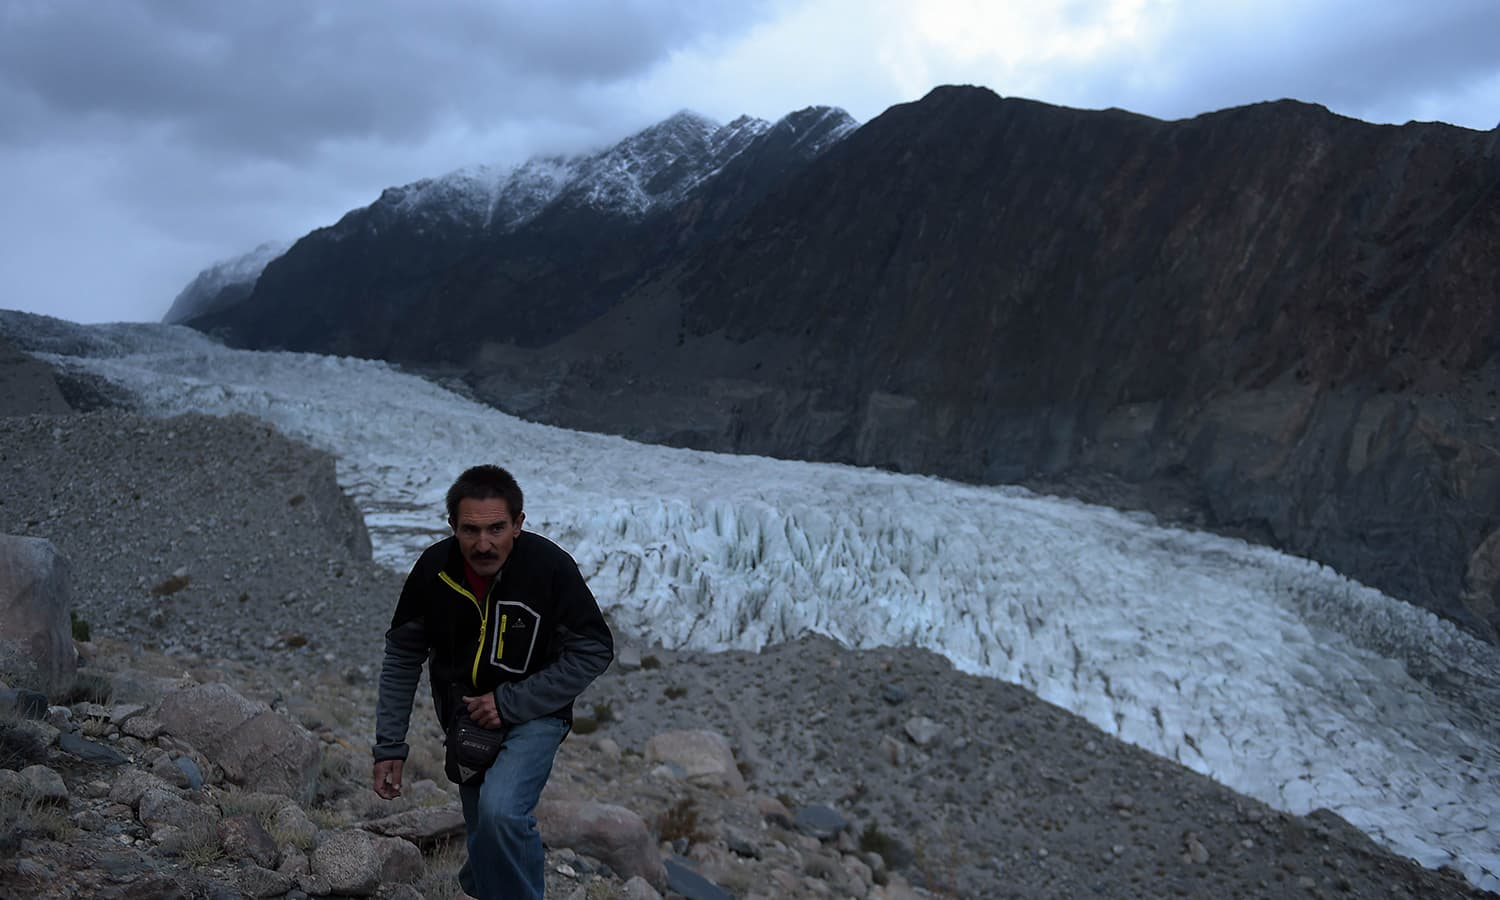 A Pakistan Meteorological Department (PMD) employee takes observations at a glacier monitoring station, set at an elevation of 4,500 meters, at the 26km-long Passu glacier in the Gojal Valley. — AFP